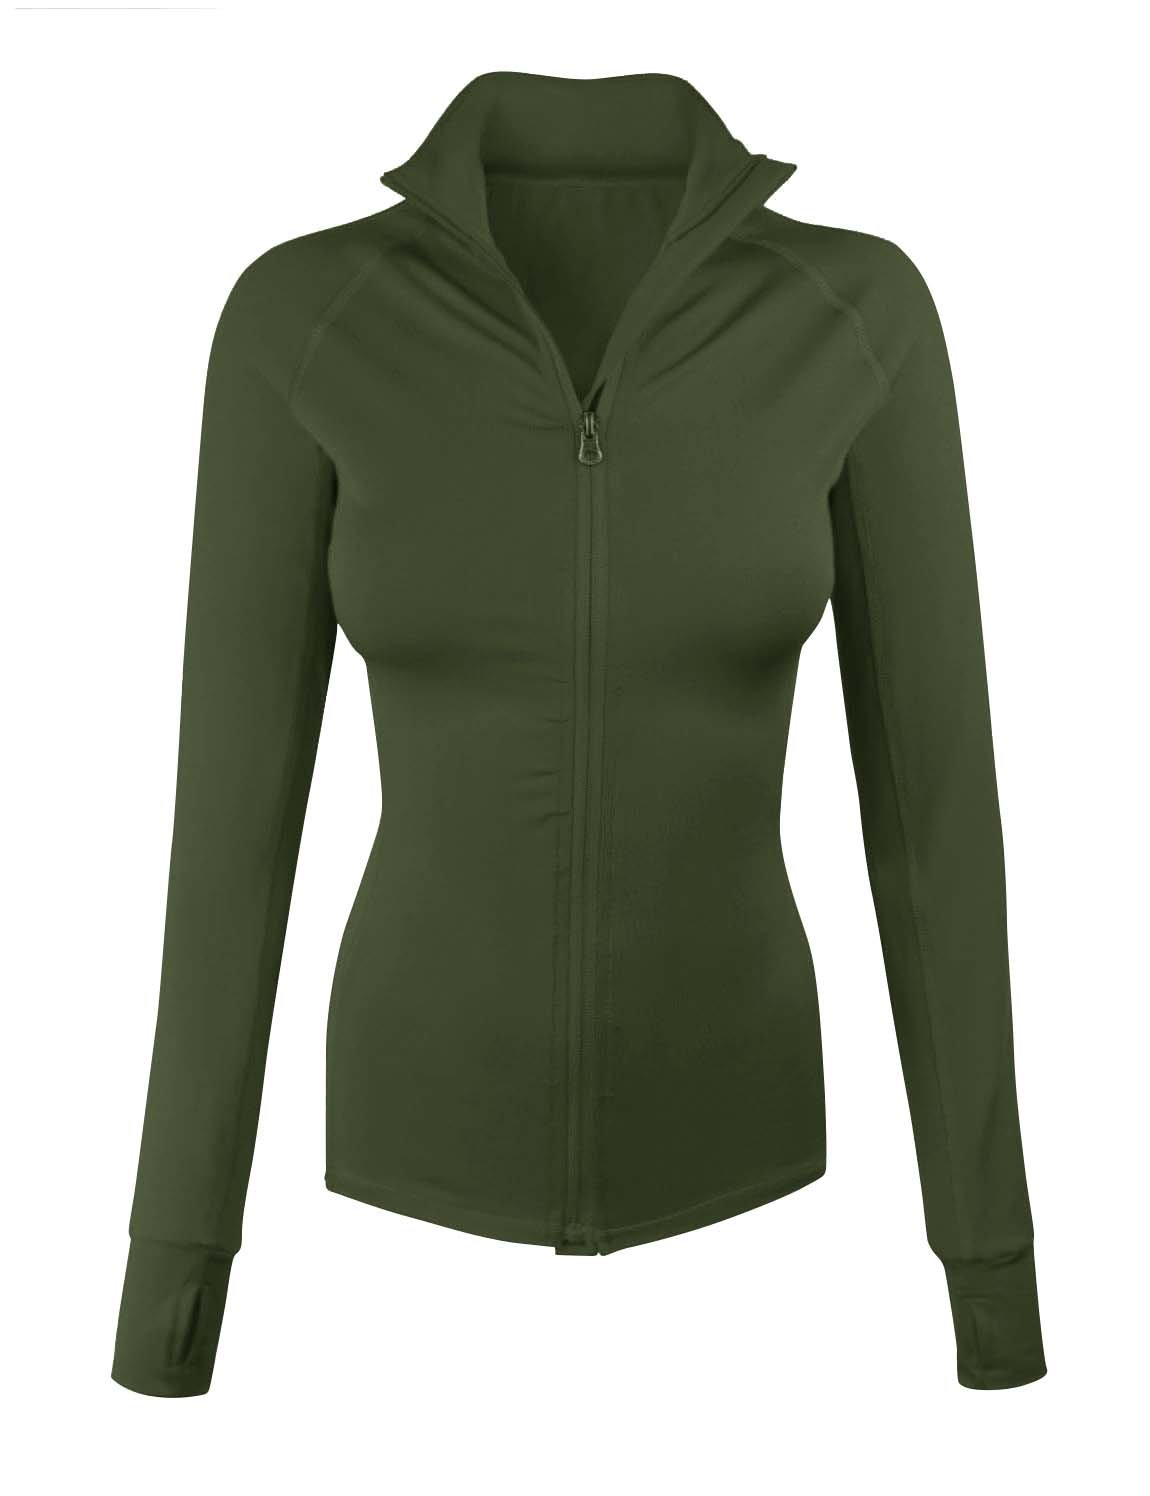 makeitmint Women's Comfy Zip up Stretchy Work Out Track Jacket w/Back Pocket Small YJZ0002_02OLIVE